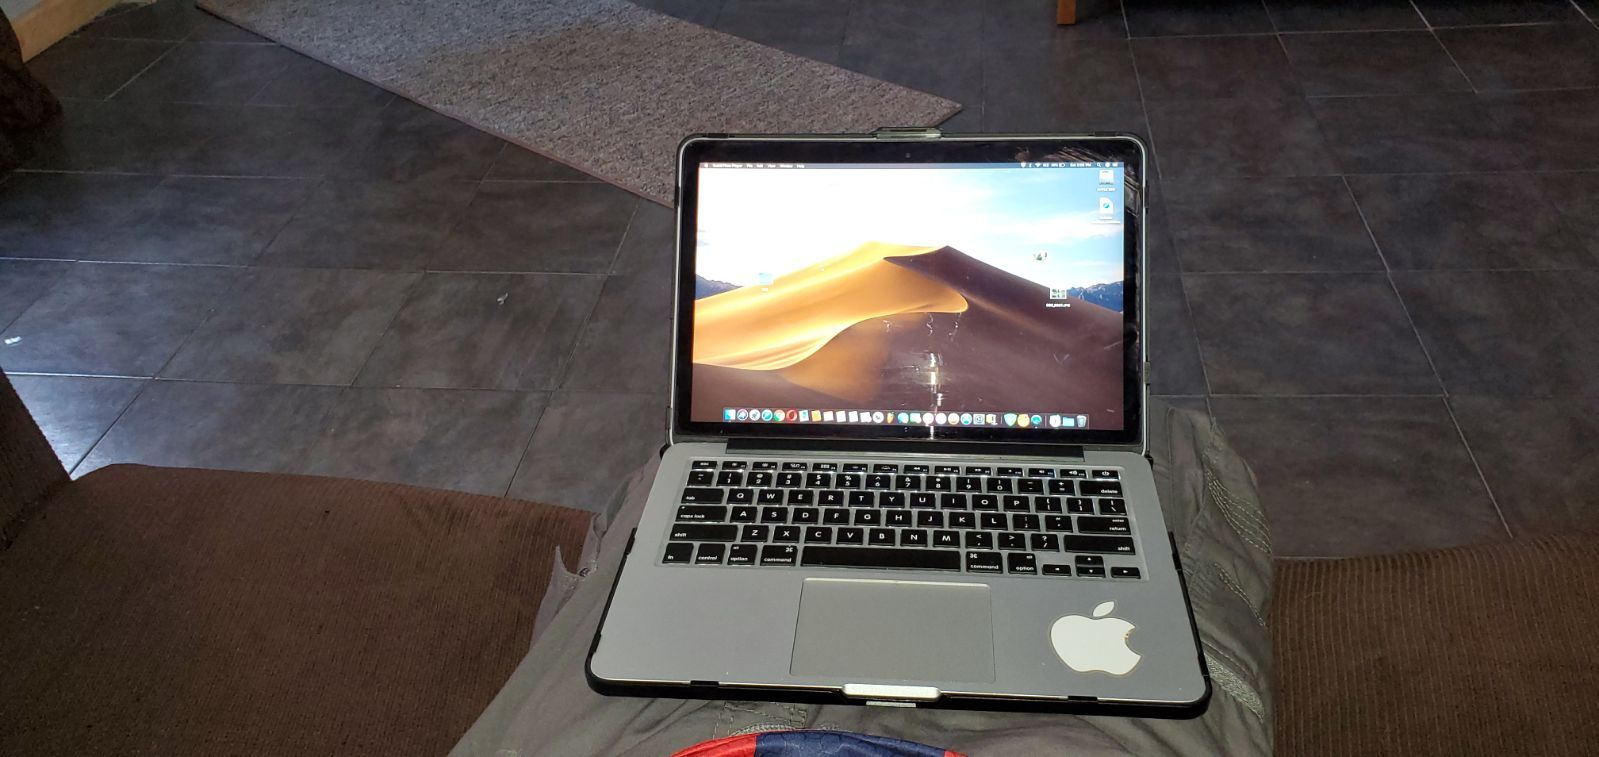 Macbook Pro 13 Retina 2015 2 7 Ghz Intel Core I5 8gb Drr3 Used And In Good Condition With New Charger But Used An Full Battery Macbook Pro 13 Things To Sell